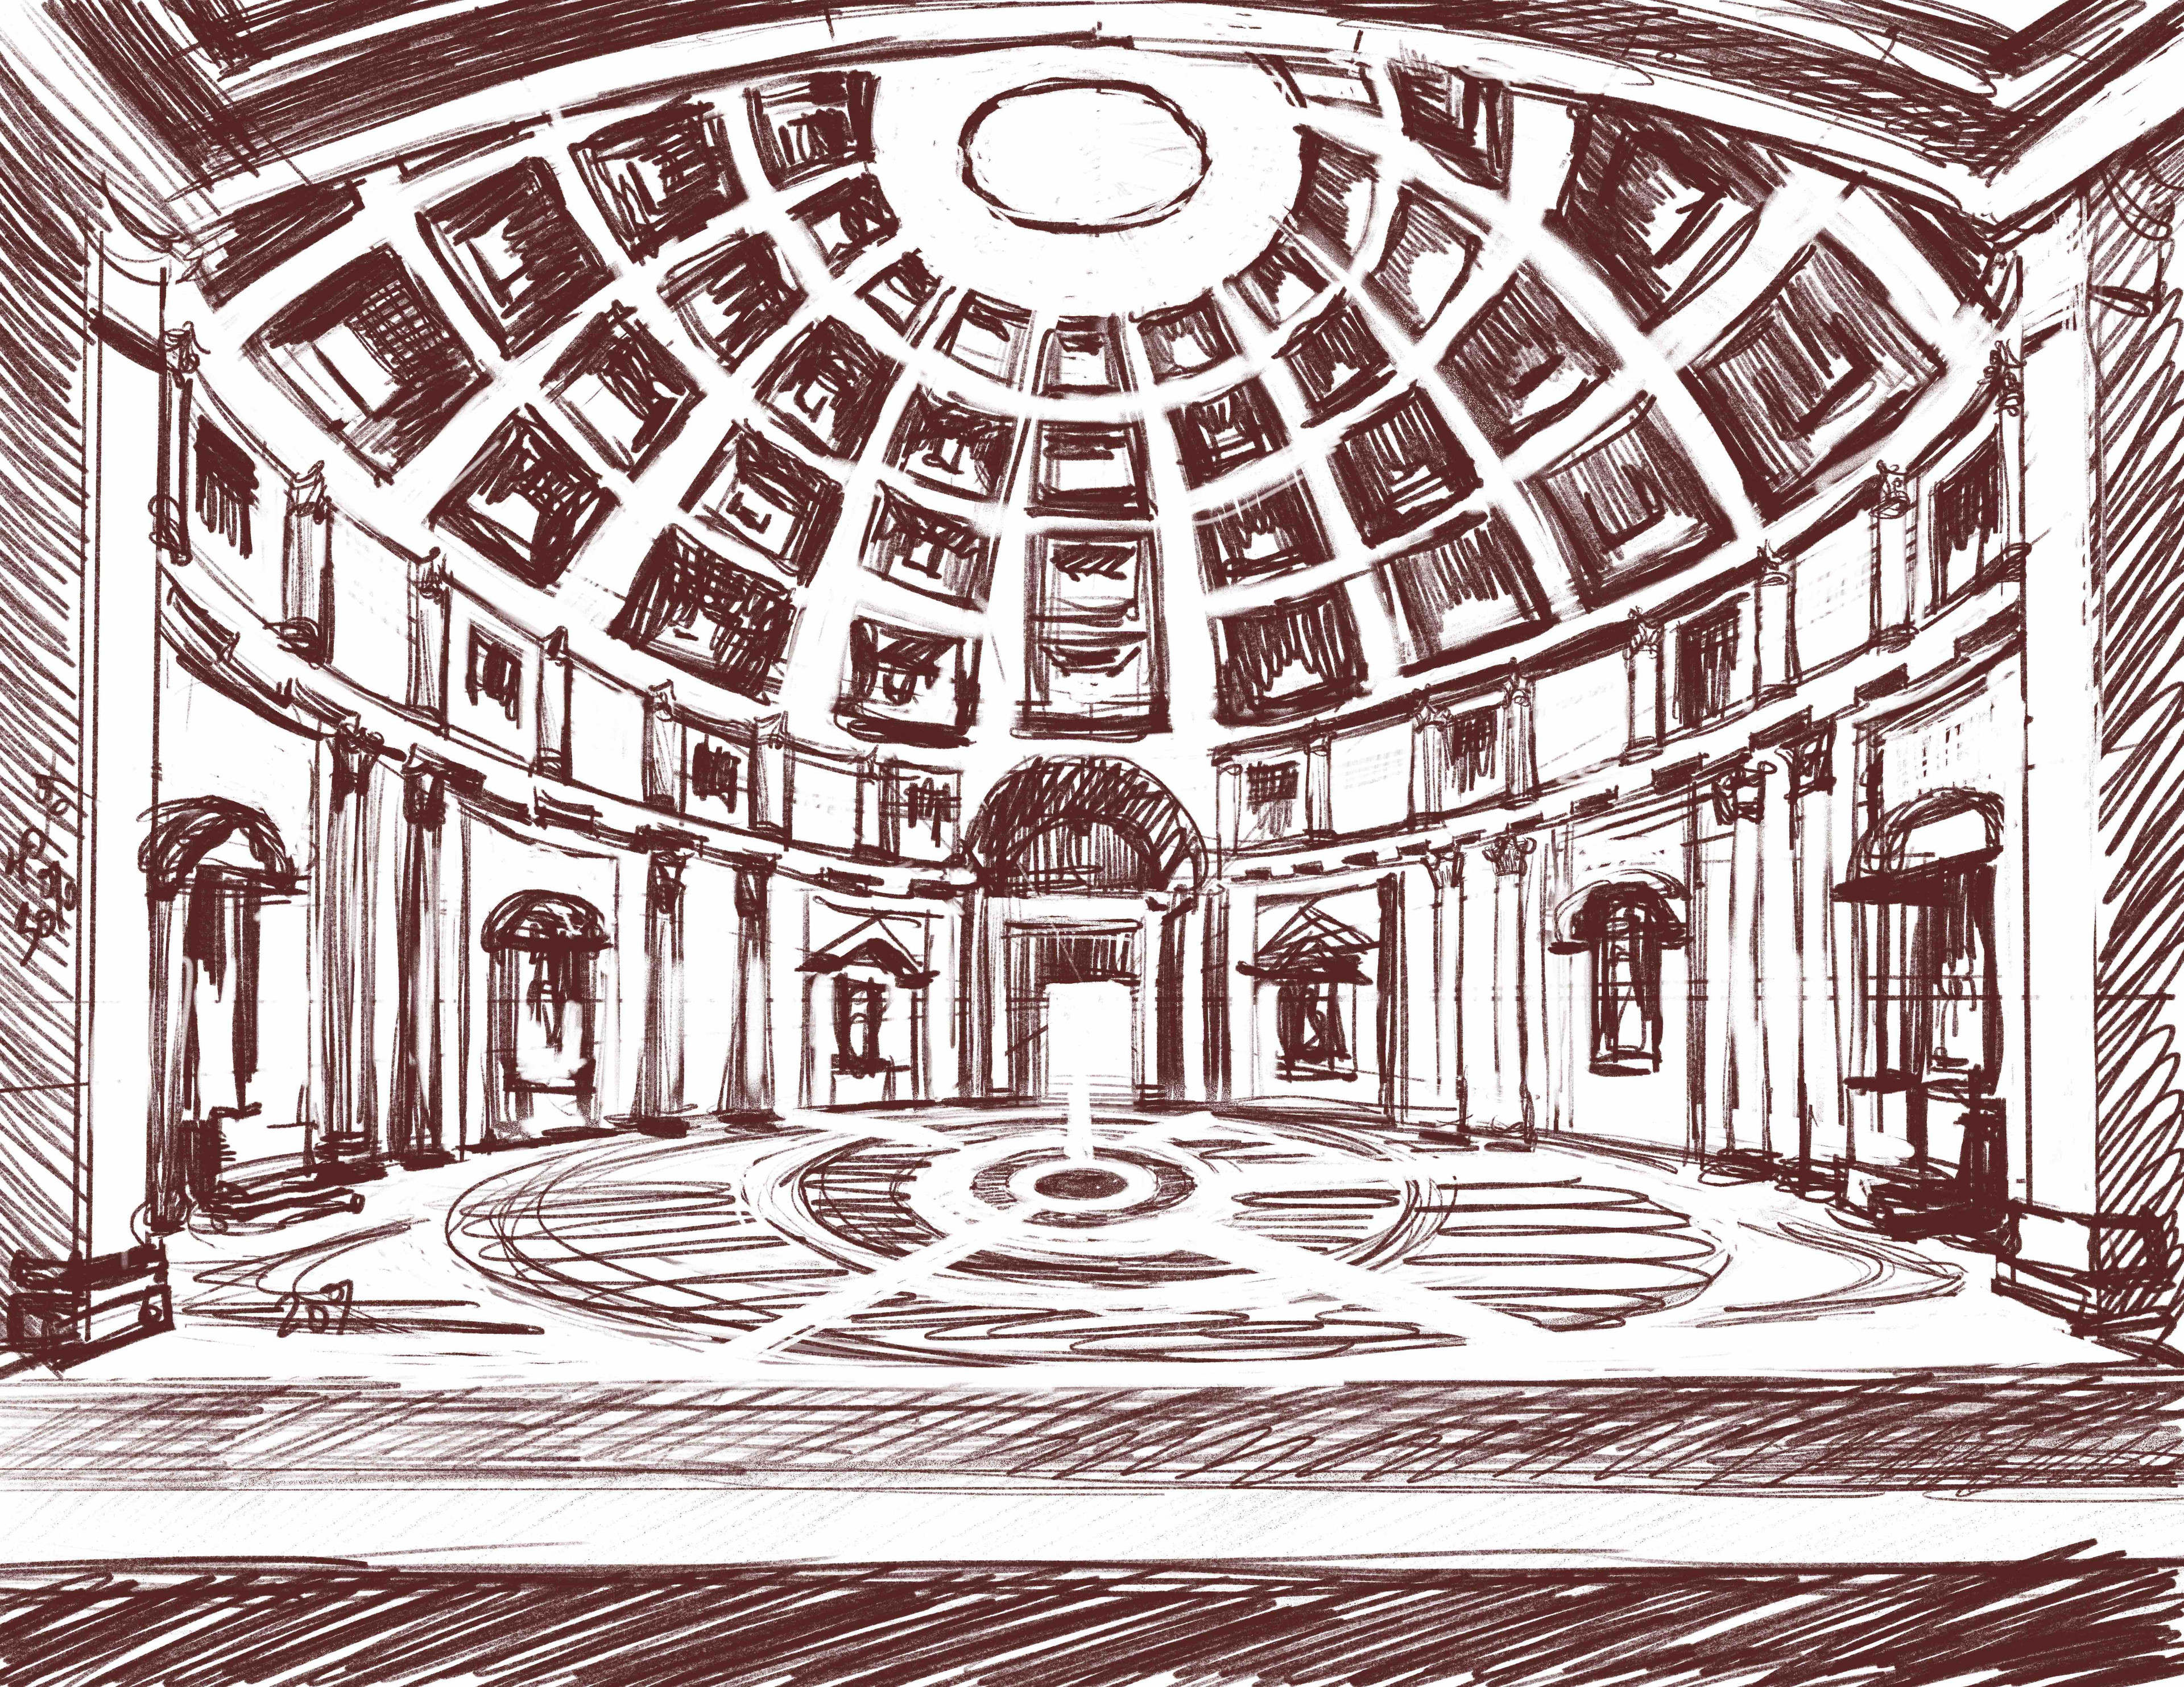 Light and Dark structure for the background drawing of the Italian architecture. Necessary for production.